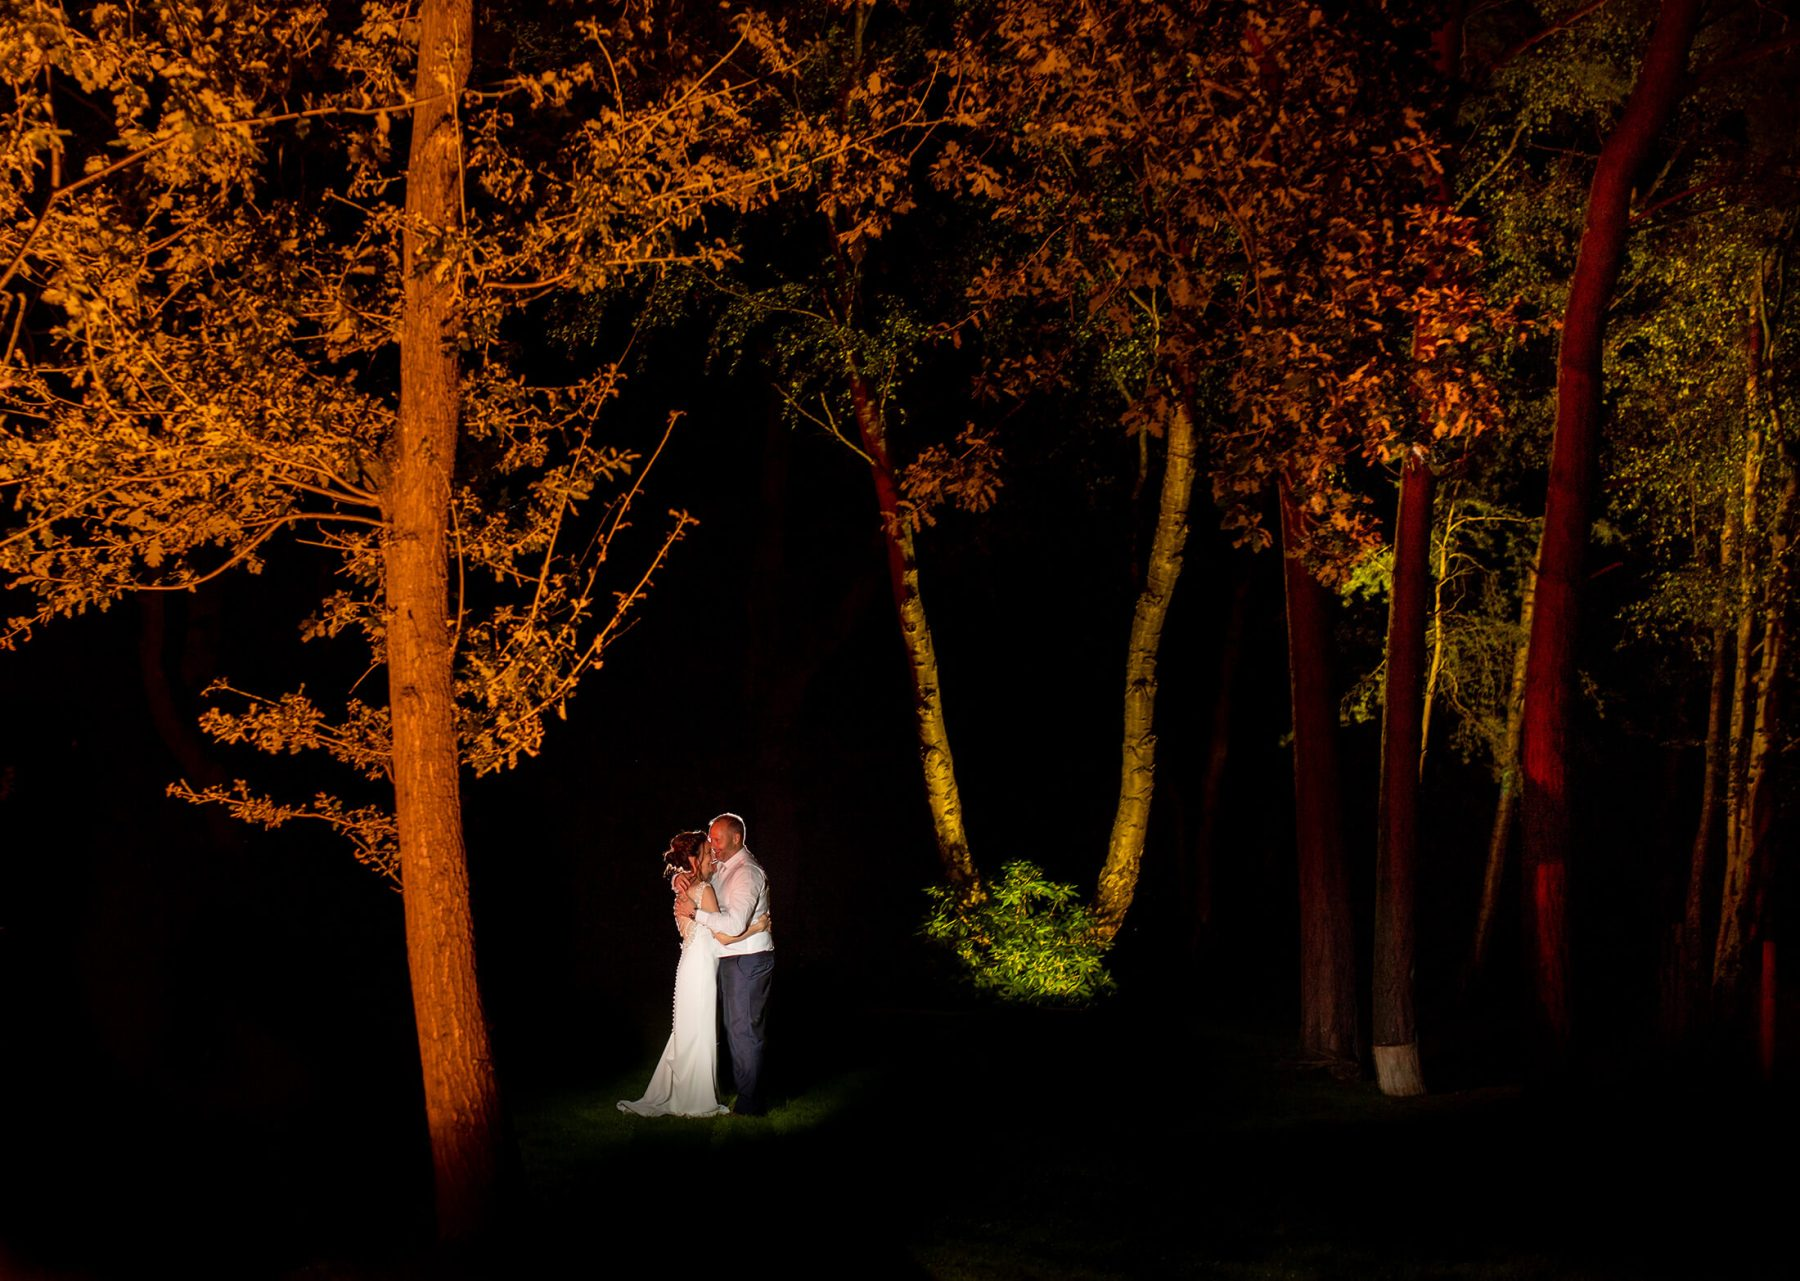 The bride and groom at night surrounded by trees at Nunsmere Hall.